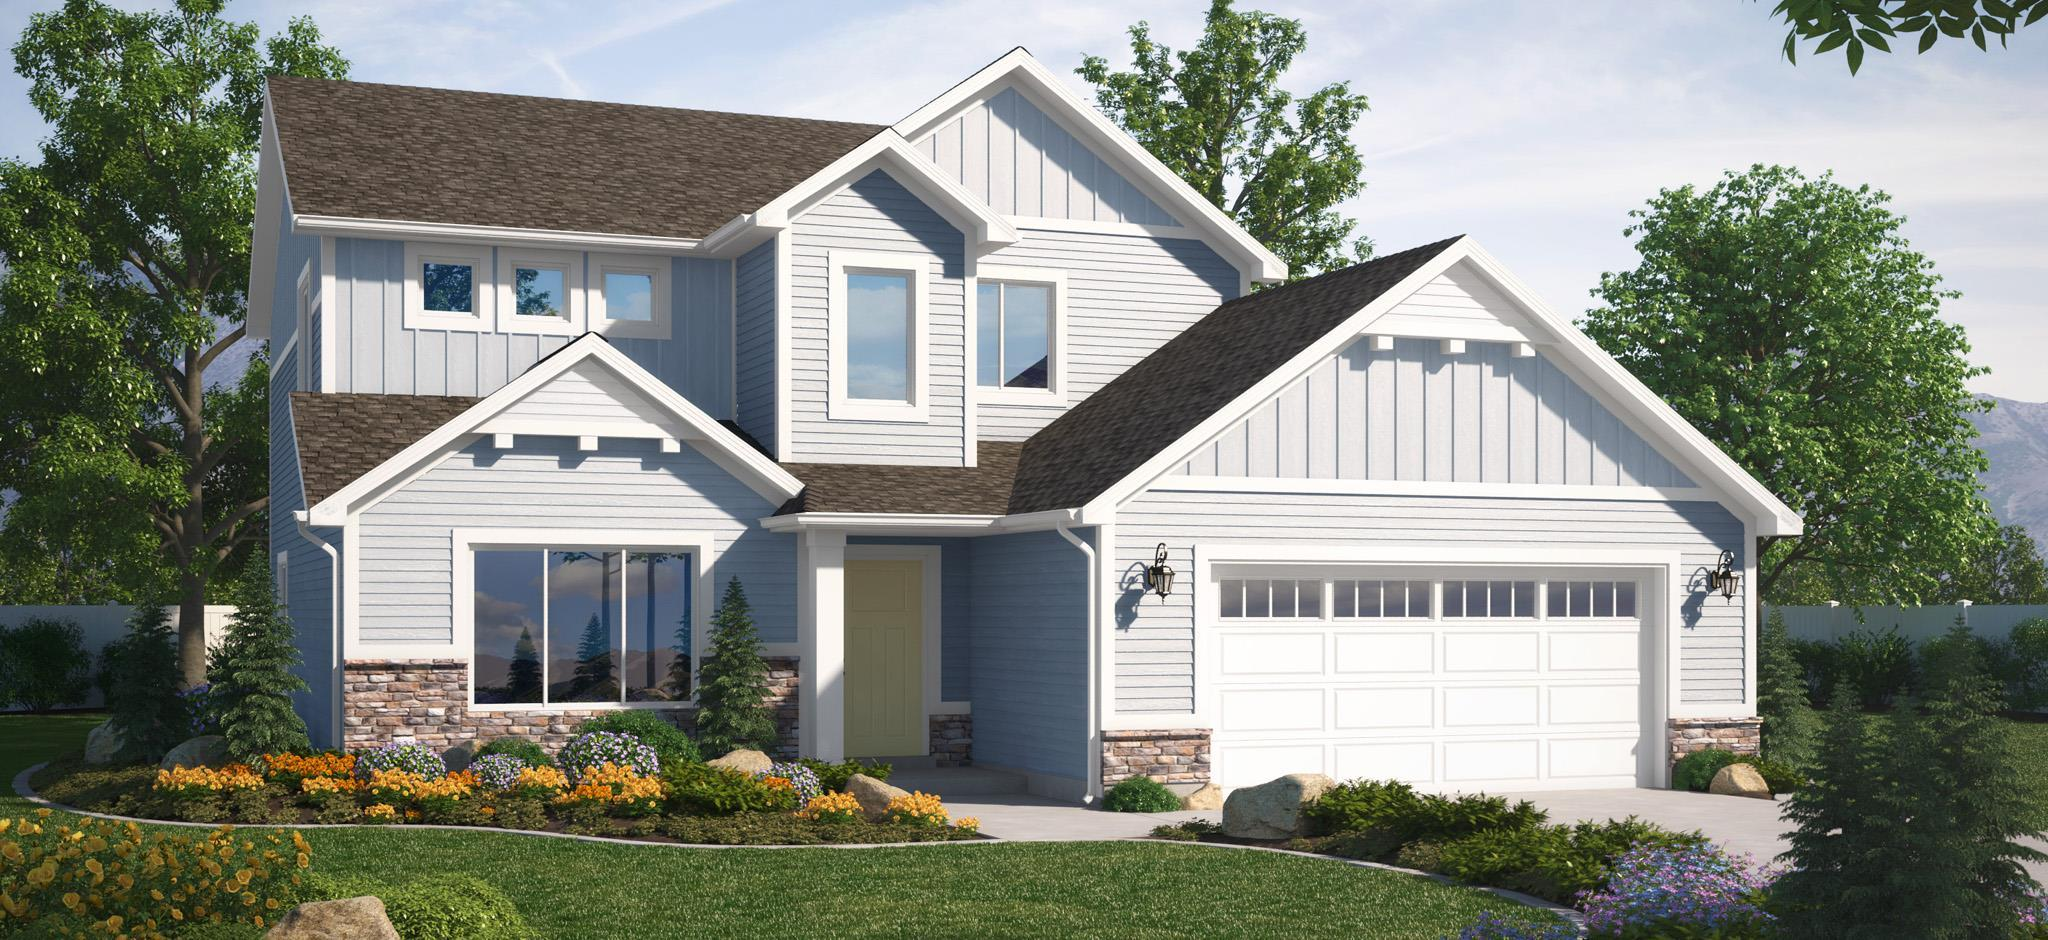 Exterior featured in the Stewart (SOG) By Visionary Homes in Logan, UT